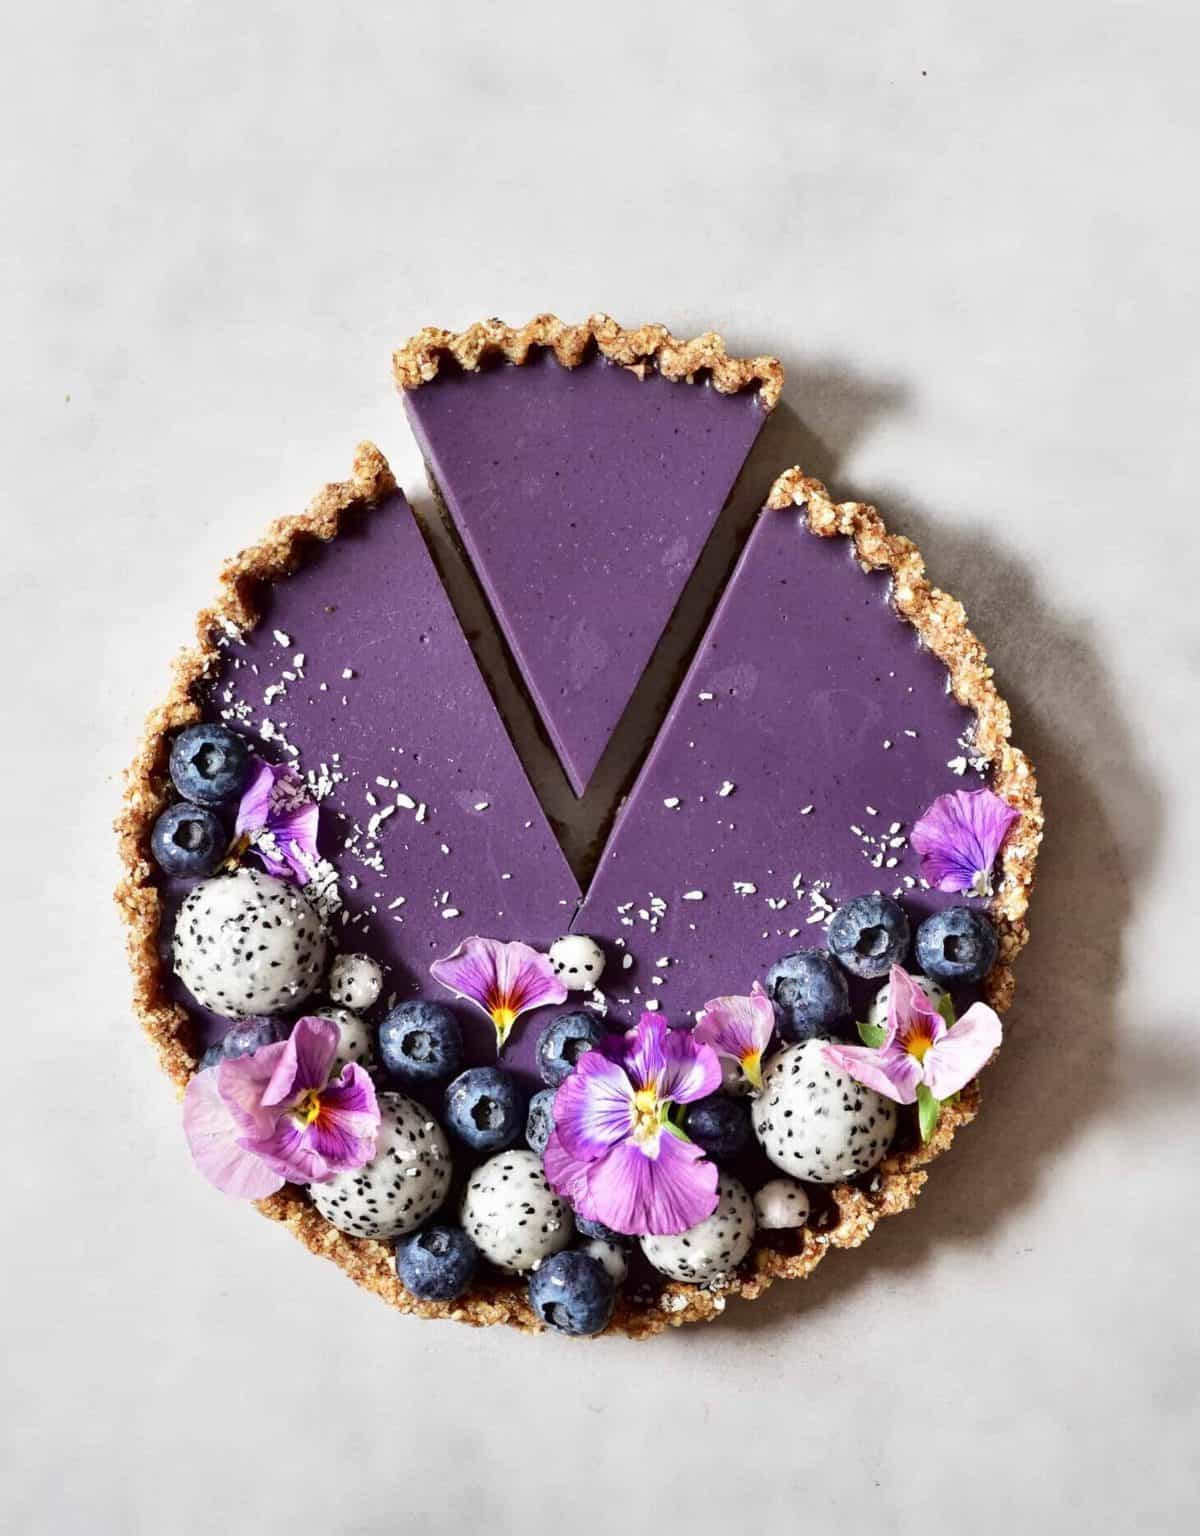 Blueberry tart decorated with blueberries dragon fruit balls and edible flowers with a slice cut off